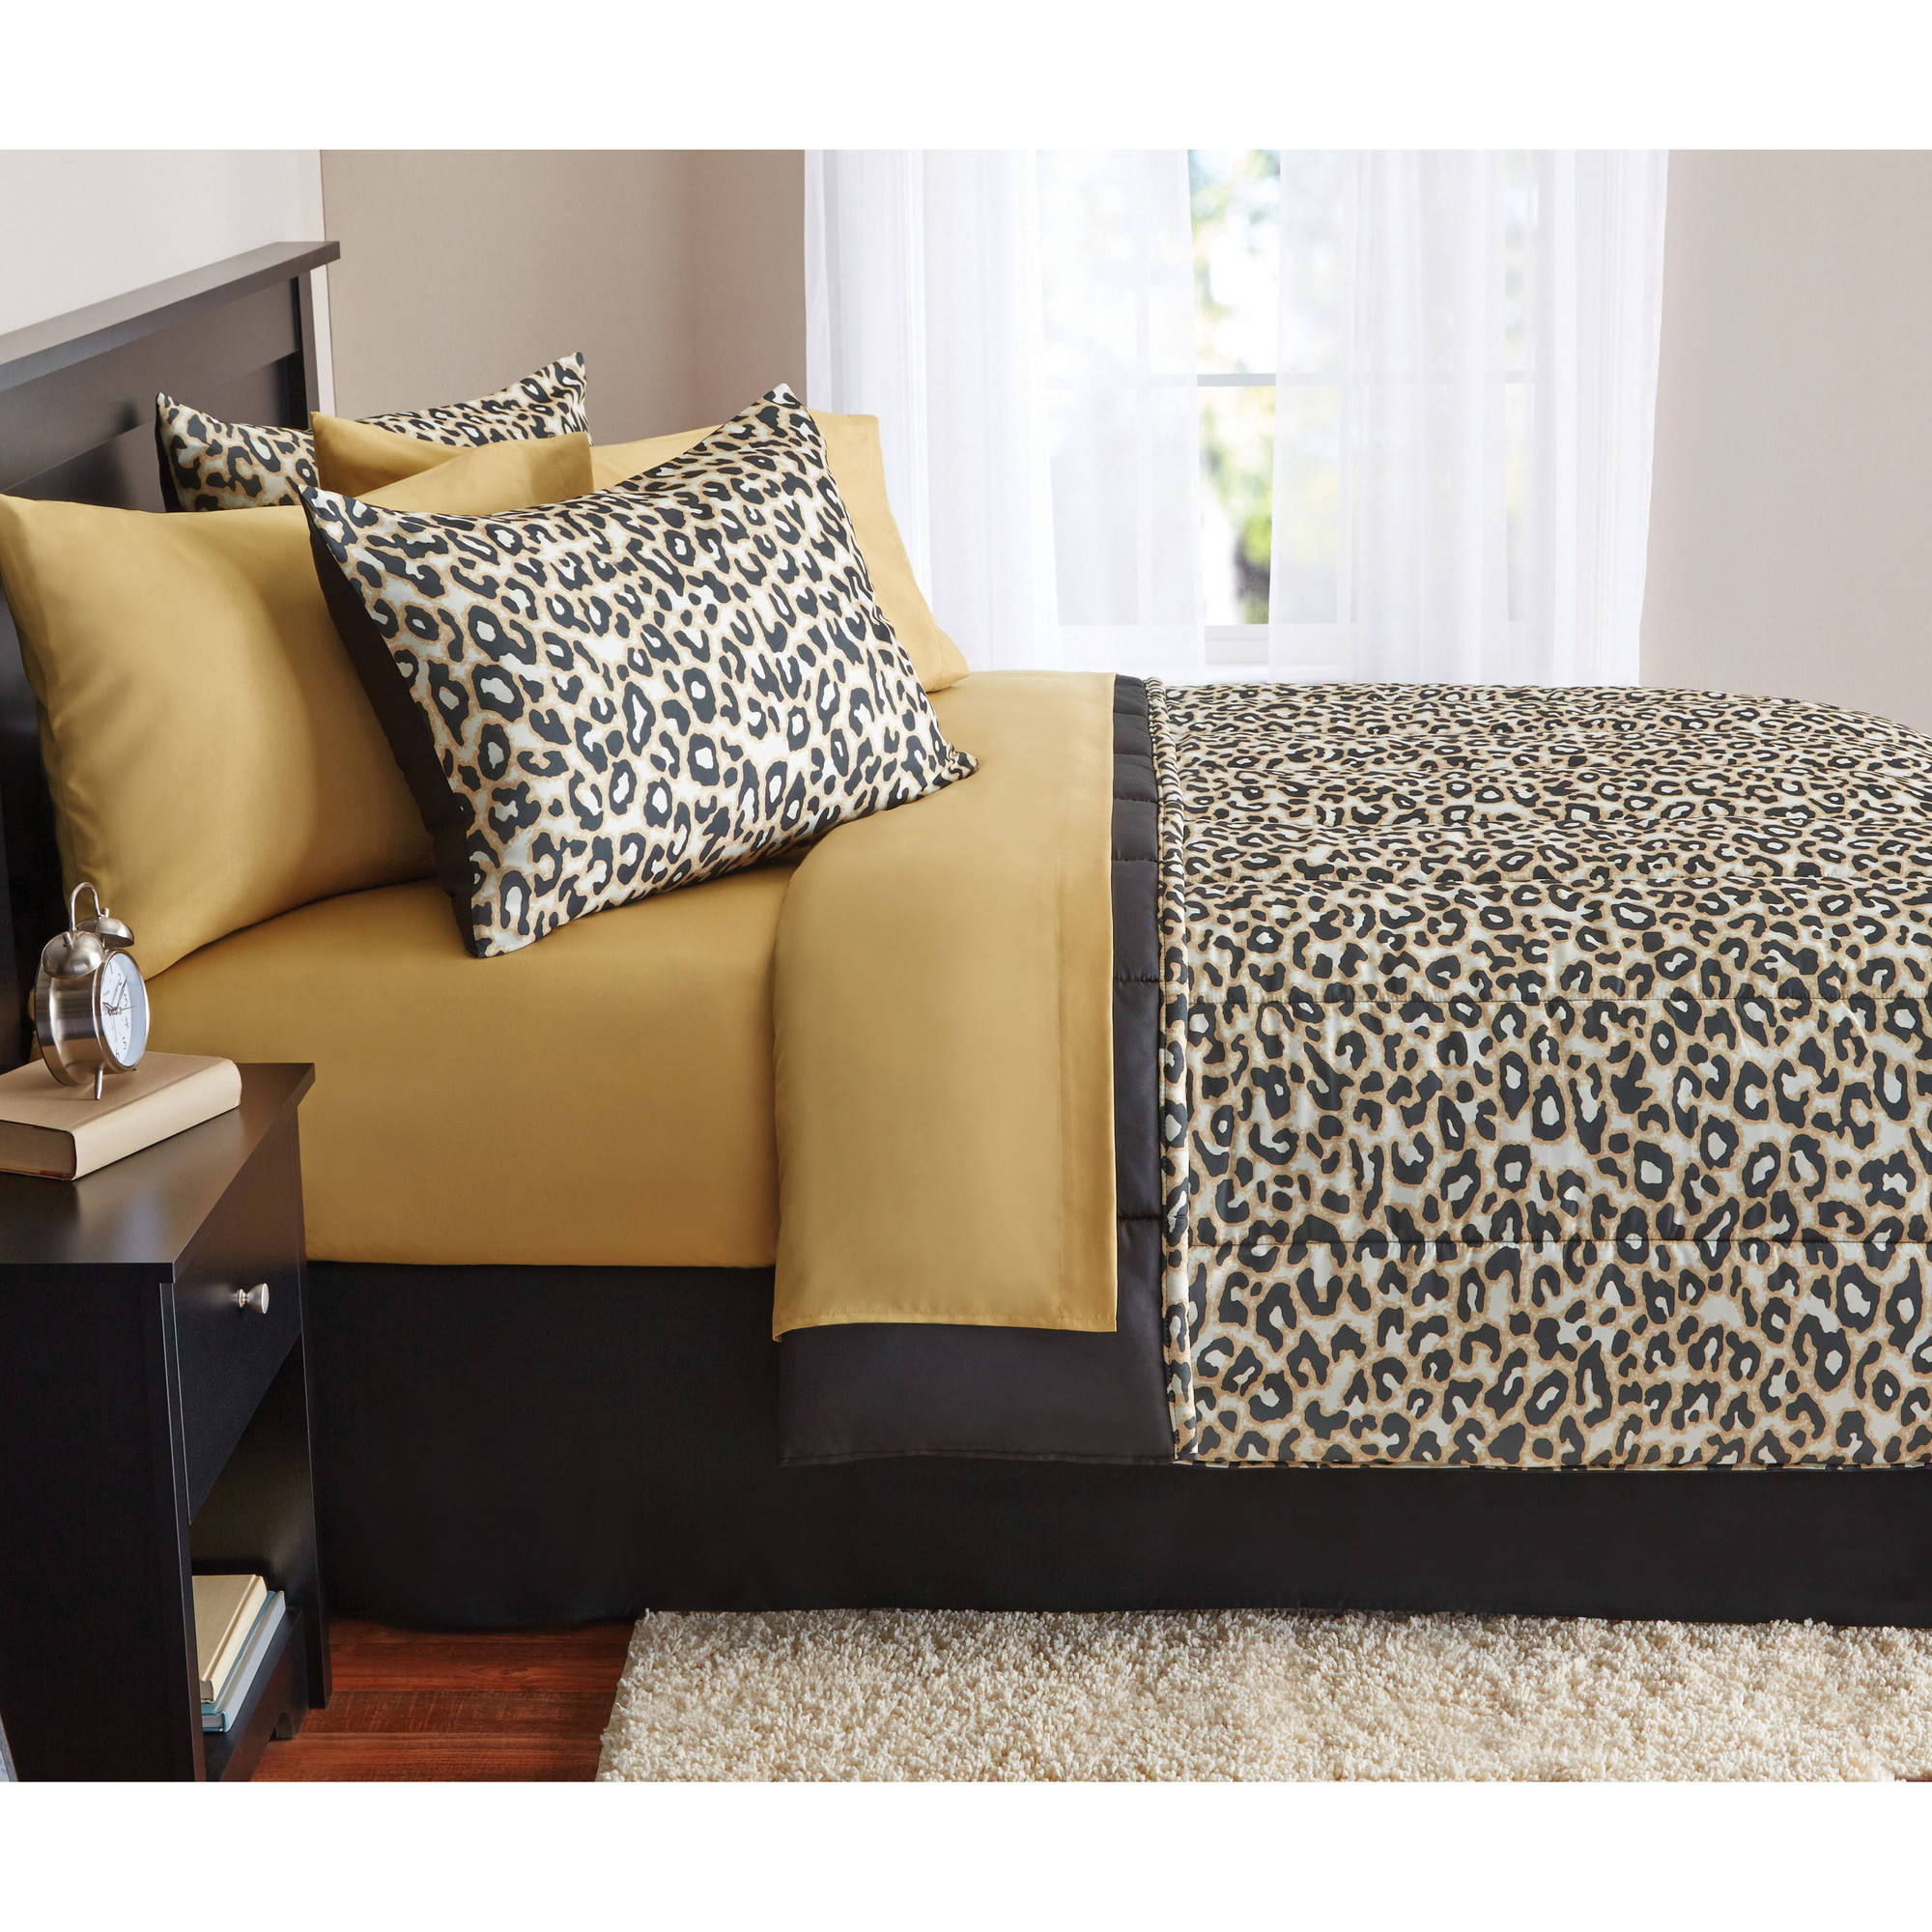 Mainstays Bed-in-a-Bag Complete Animal Bedding Set